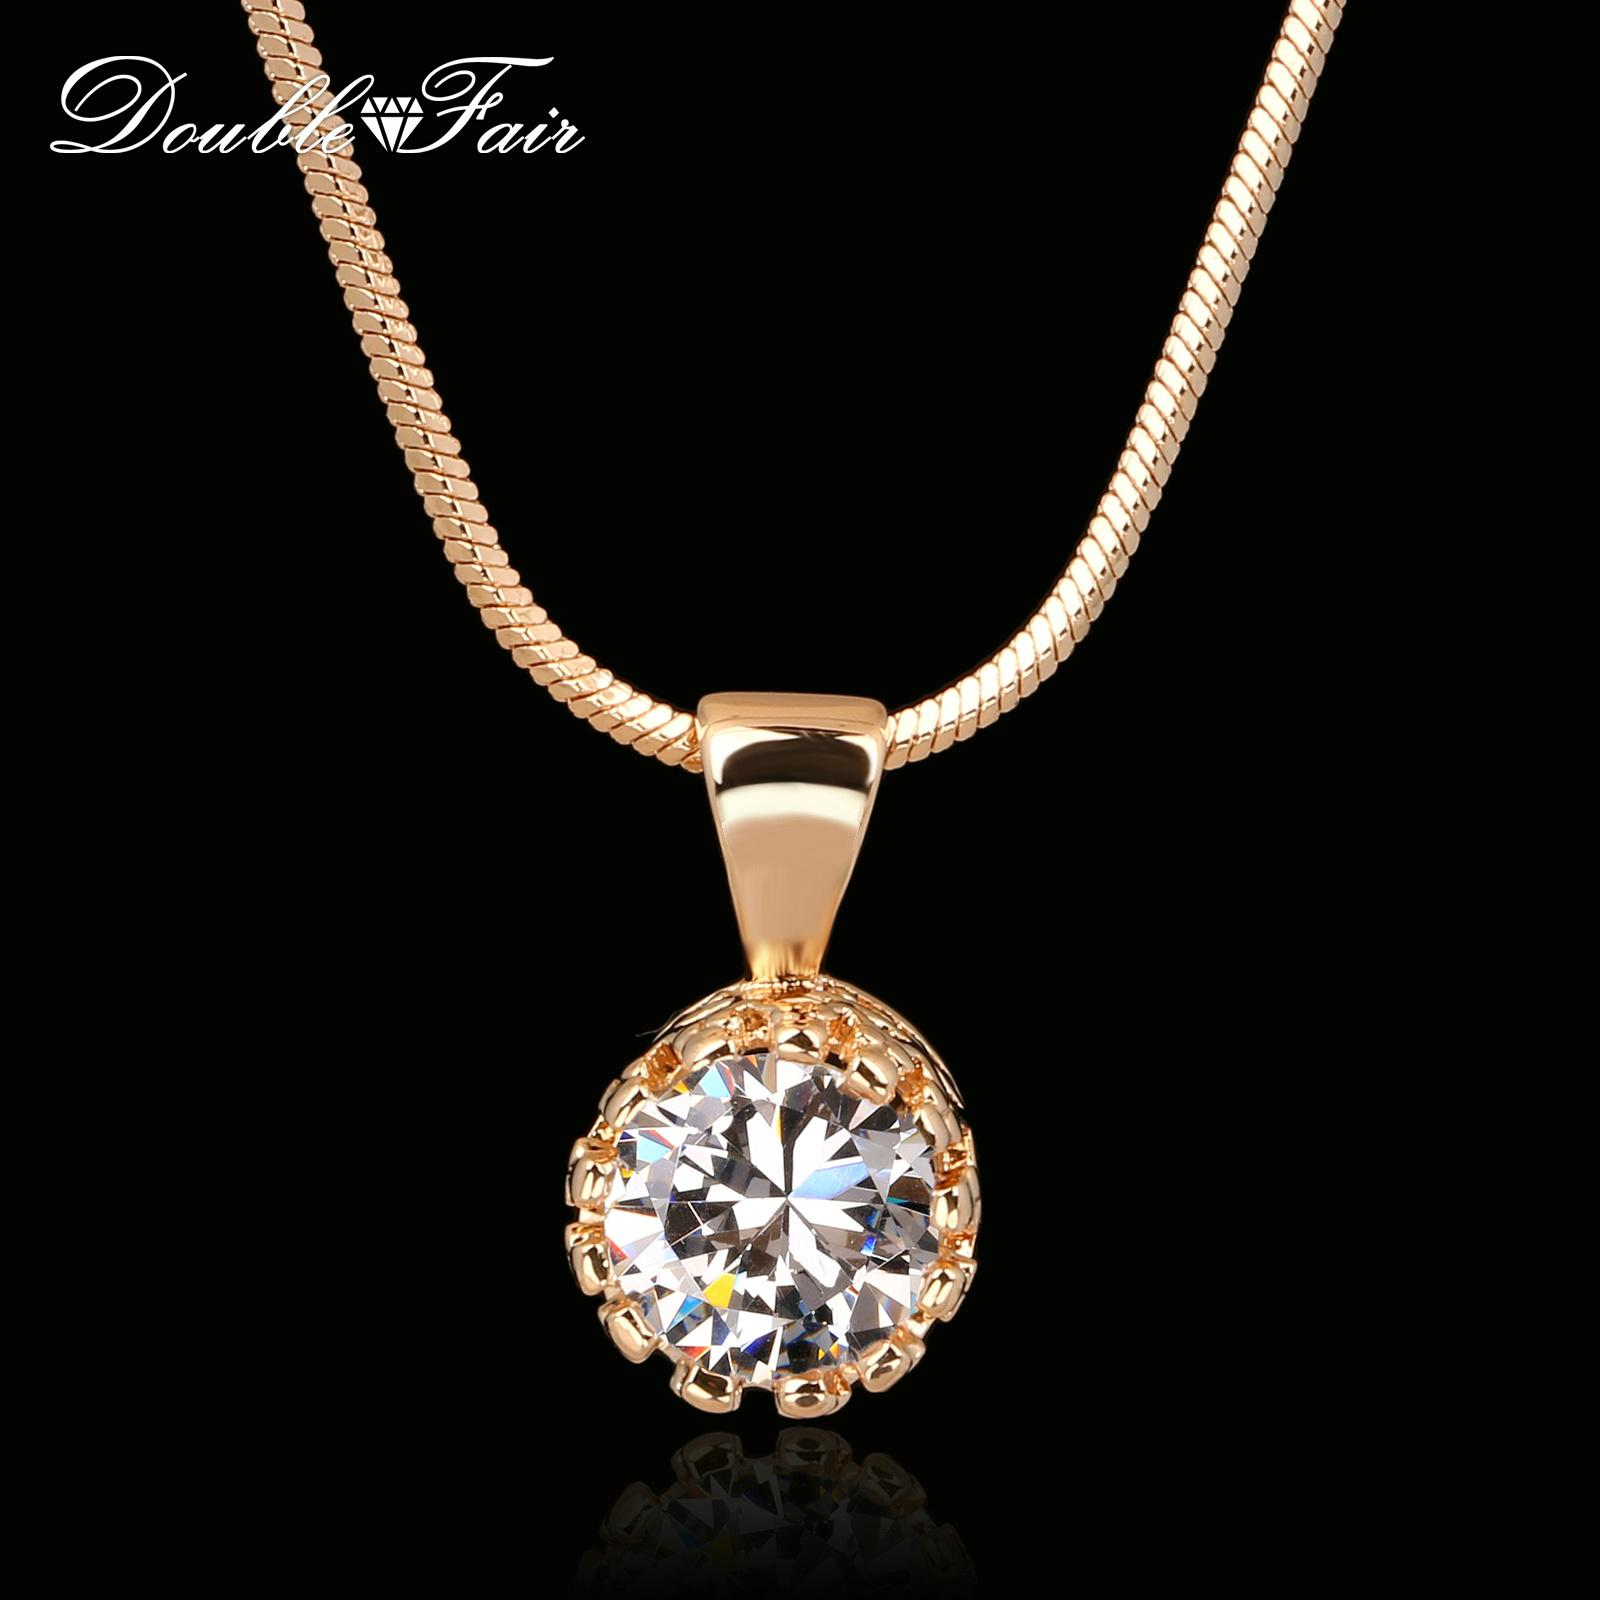 bc3ddecba3 Wholesale Brand Crown Cubic Zirconia Necklaces & Pendants Silver/Rose Gold  Color Snake Chain Fashion Jewelry For Women DFN390 Necklace Jewelry Online  with ...